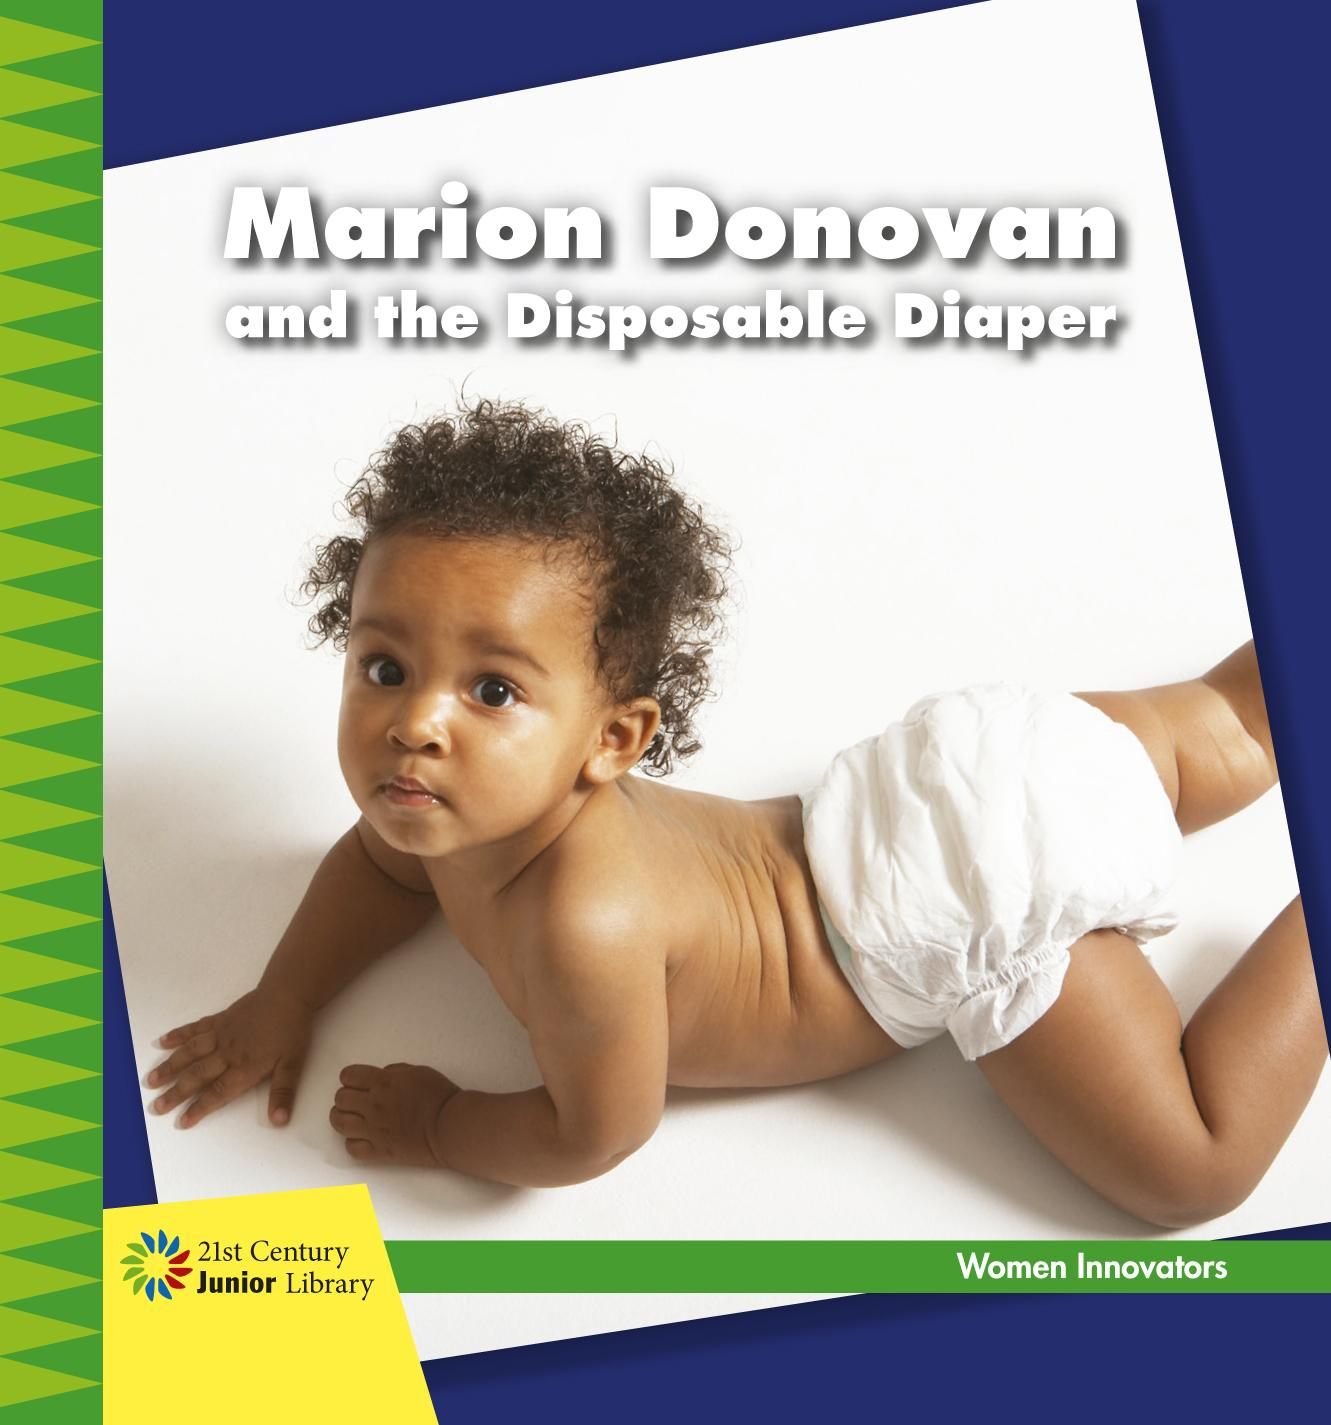 Marion Donovan and the Disposable Diaper